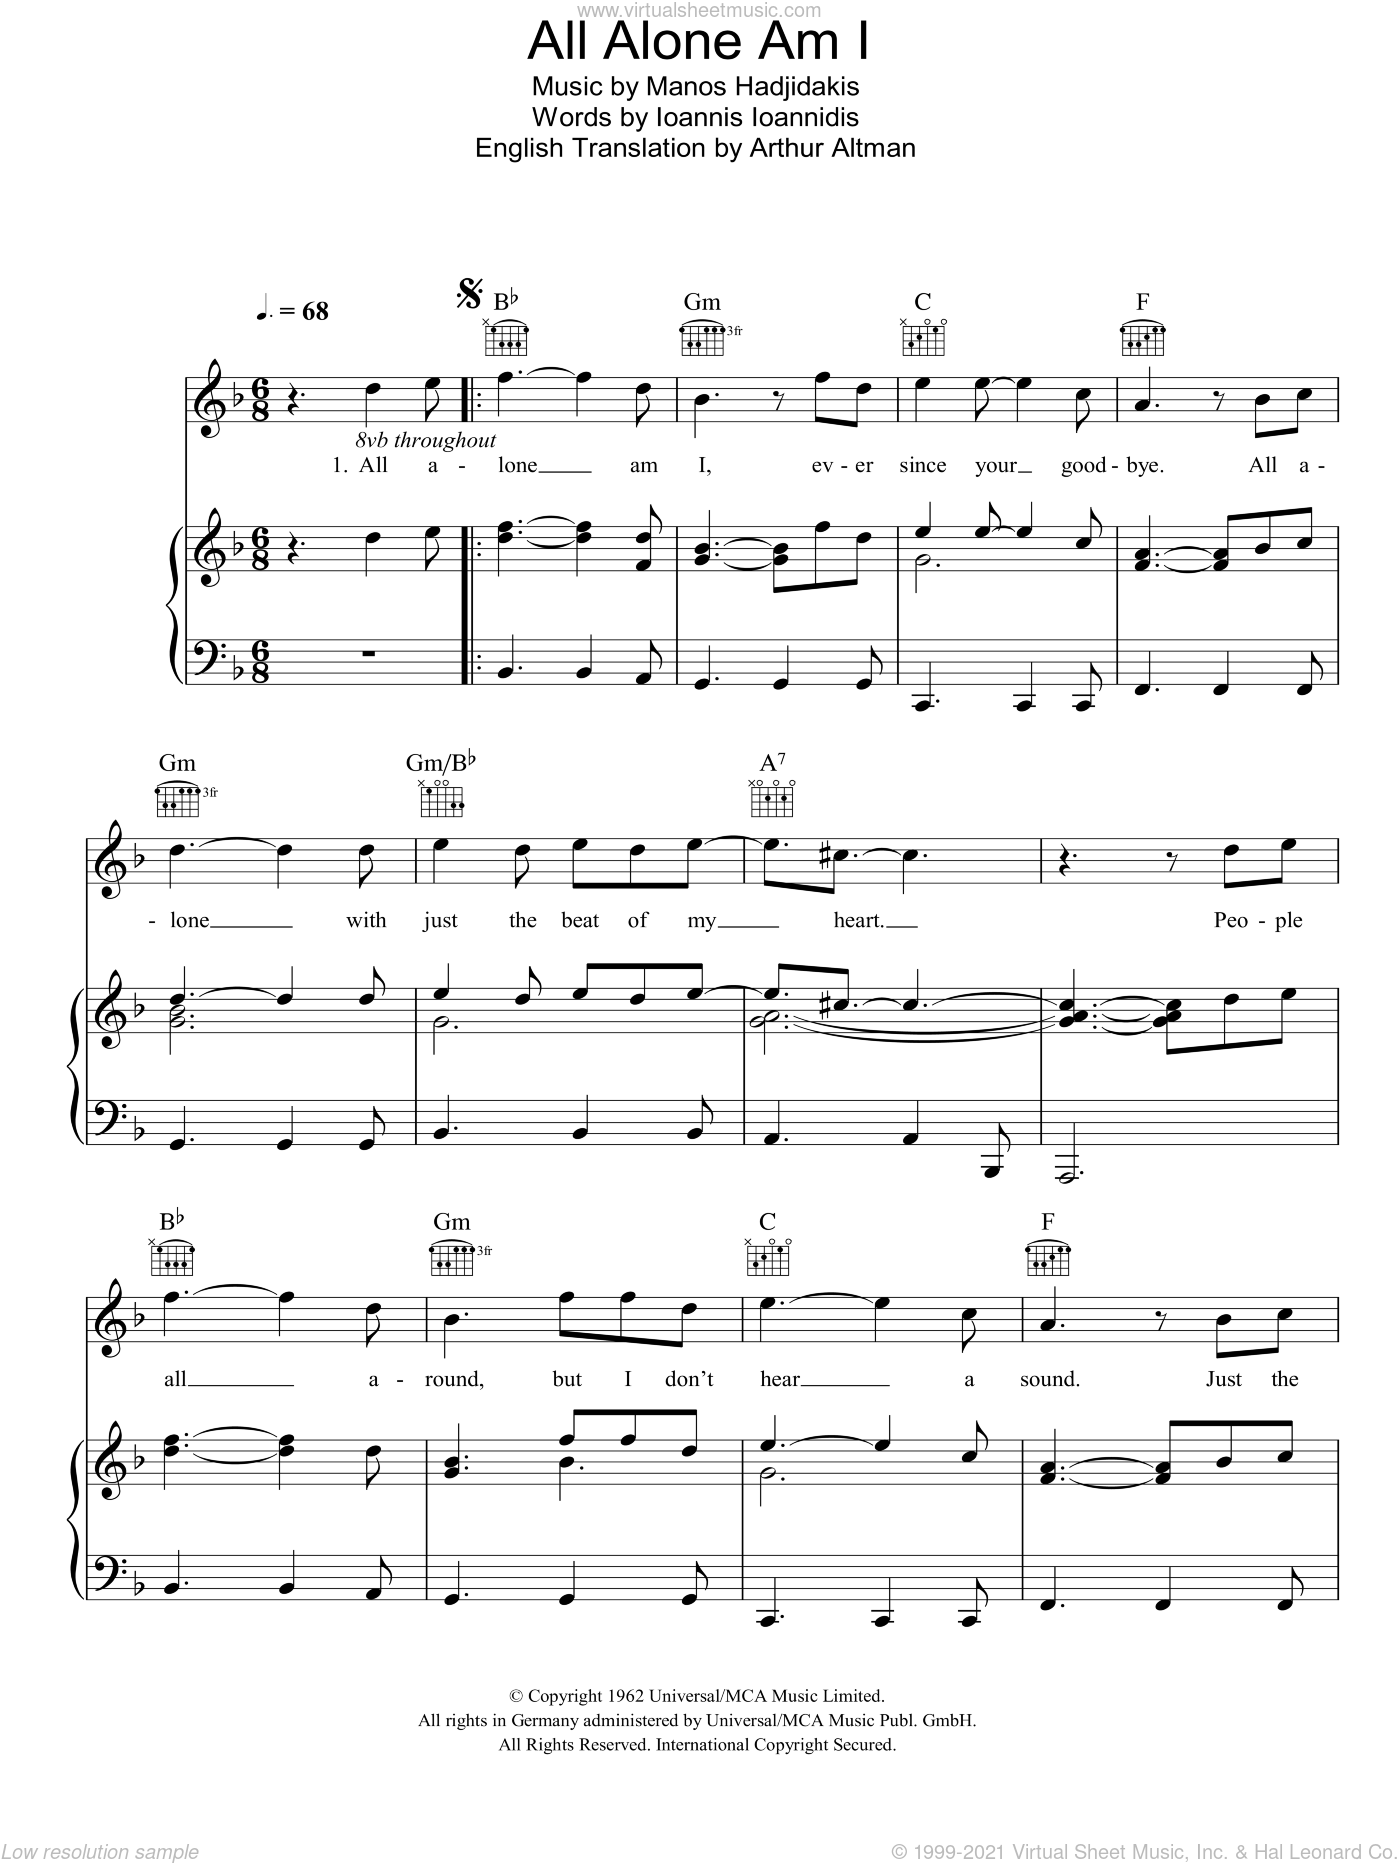 All Alone Am I sheet music for voice, piano or guitar by Brenda Lee, Arthur Altman, Ioannis Ioannidis and Manos Hadjidakis, intermediate skill level